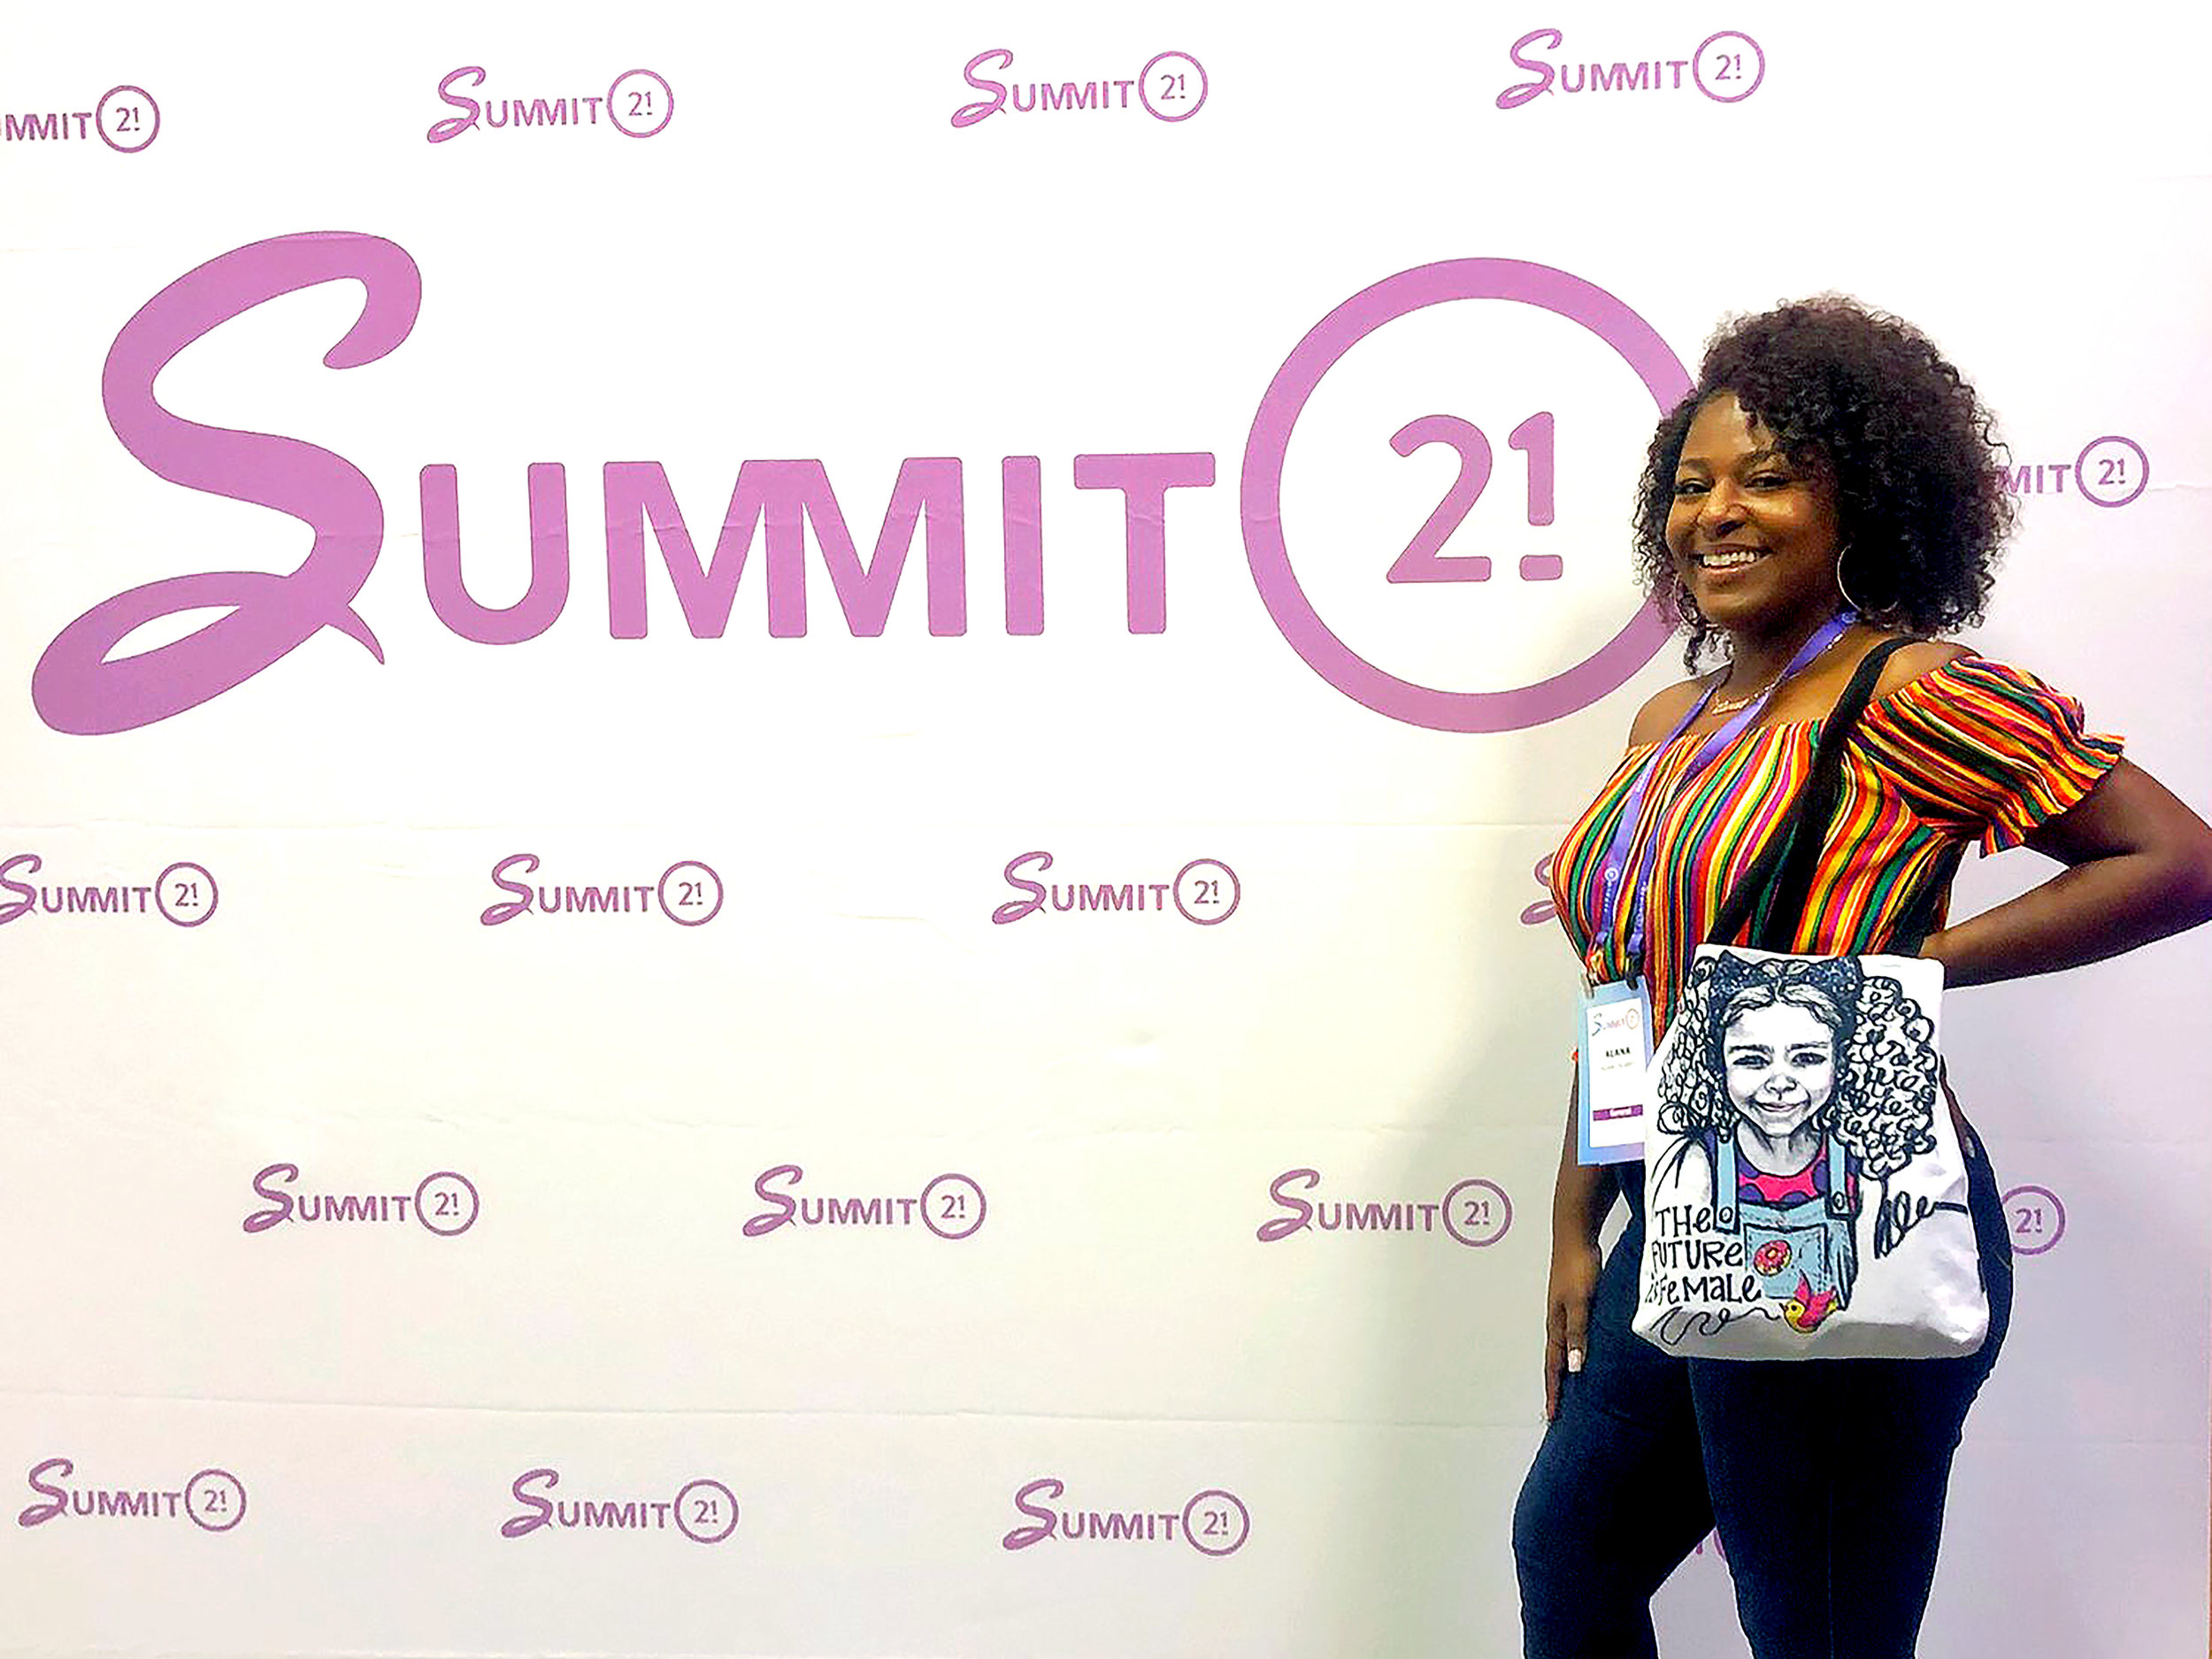 WITH #STUKGIRL ALANA - WHATS SUMMIT21 ALL ABOUT?